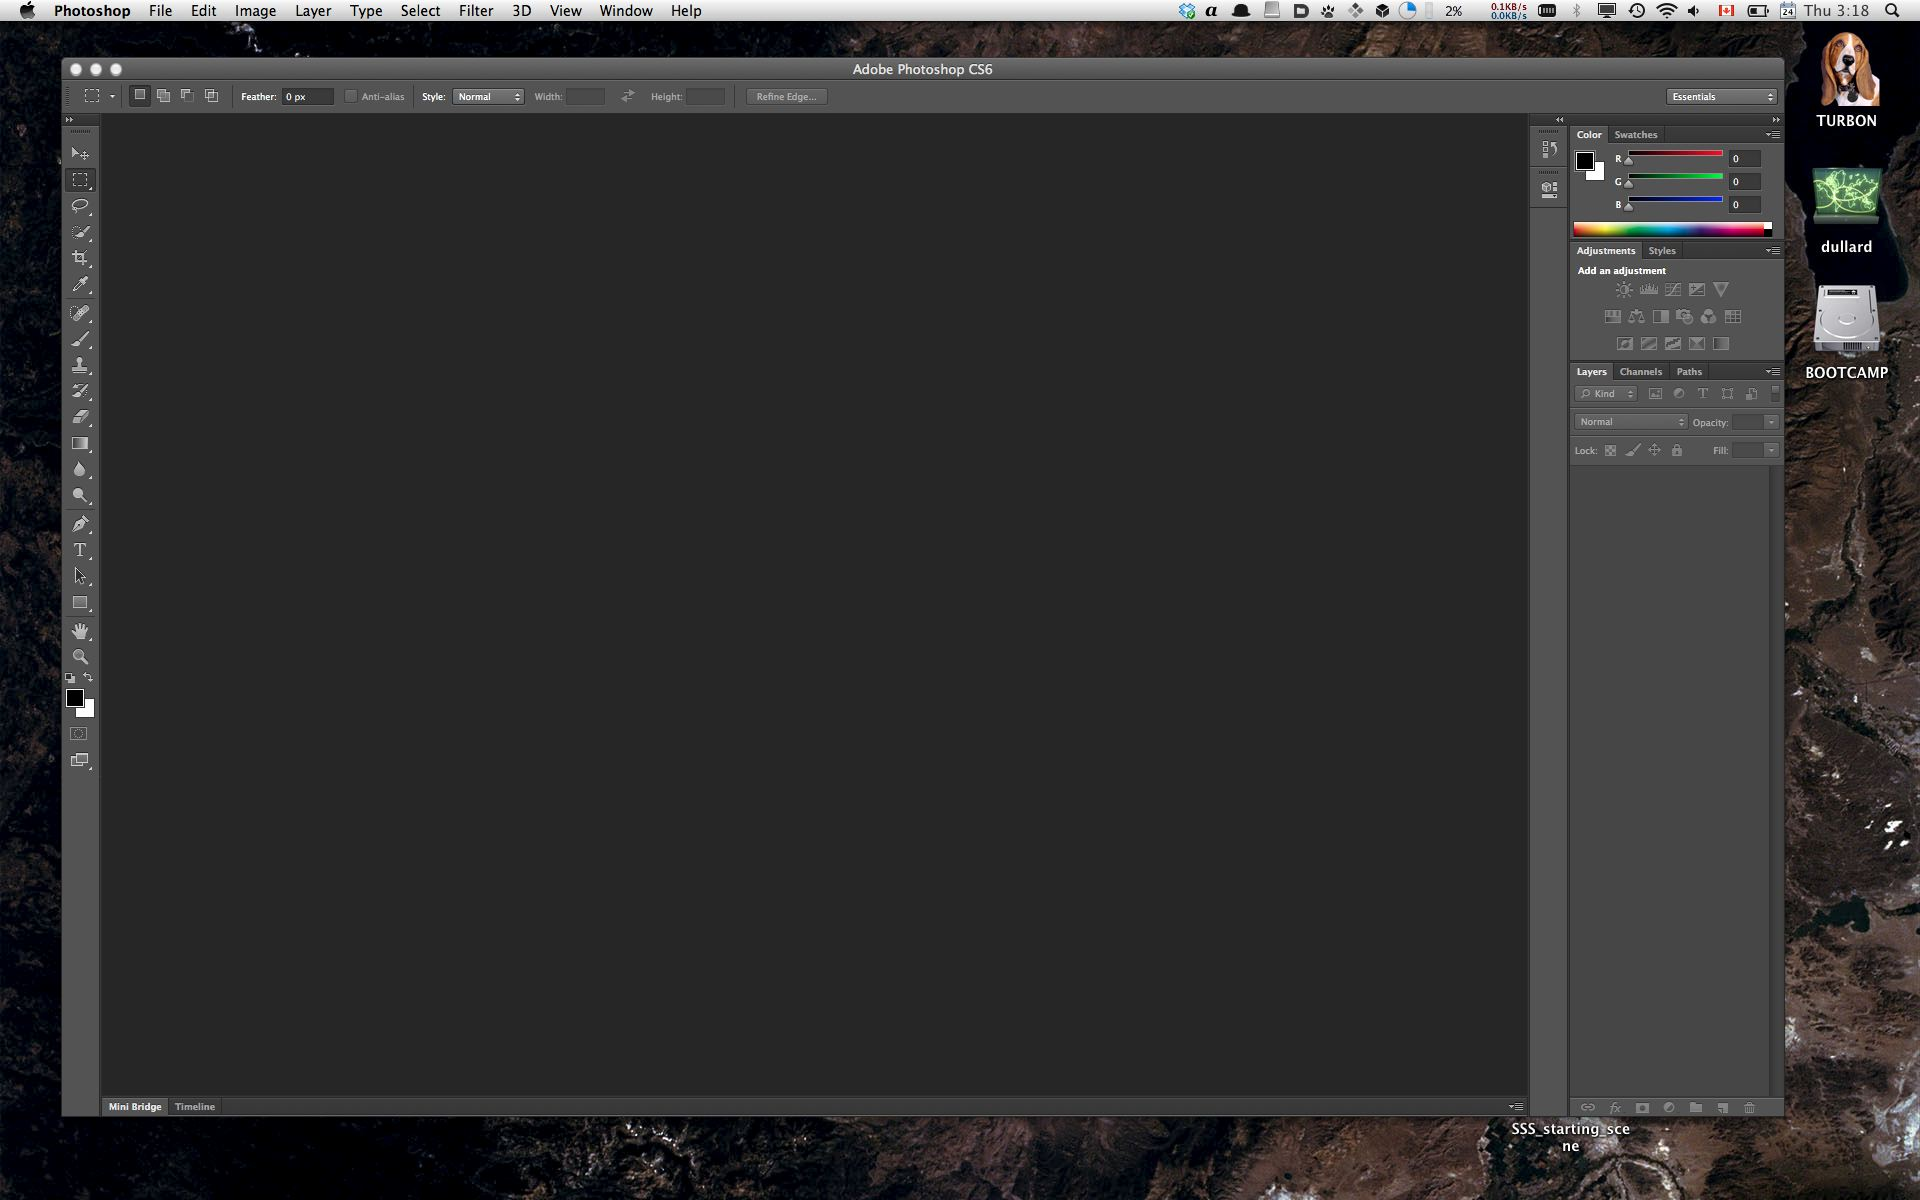 Review Adobe Photoshop Cs6 And The Creative Cloud Ars